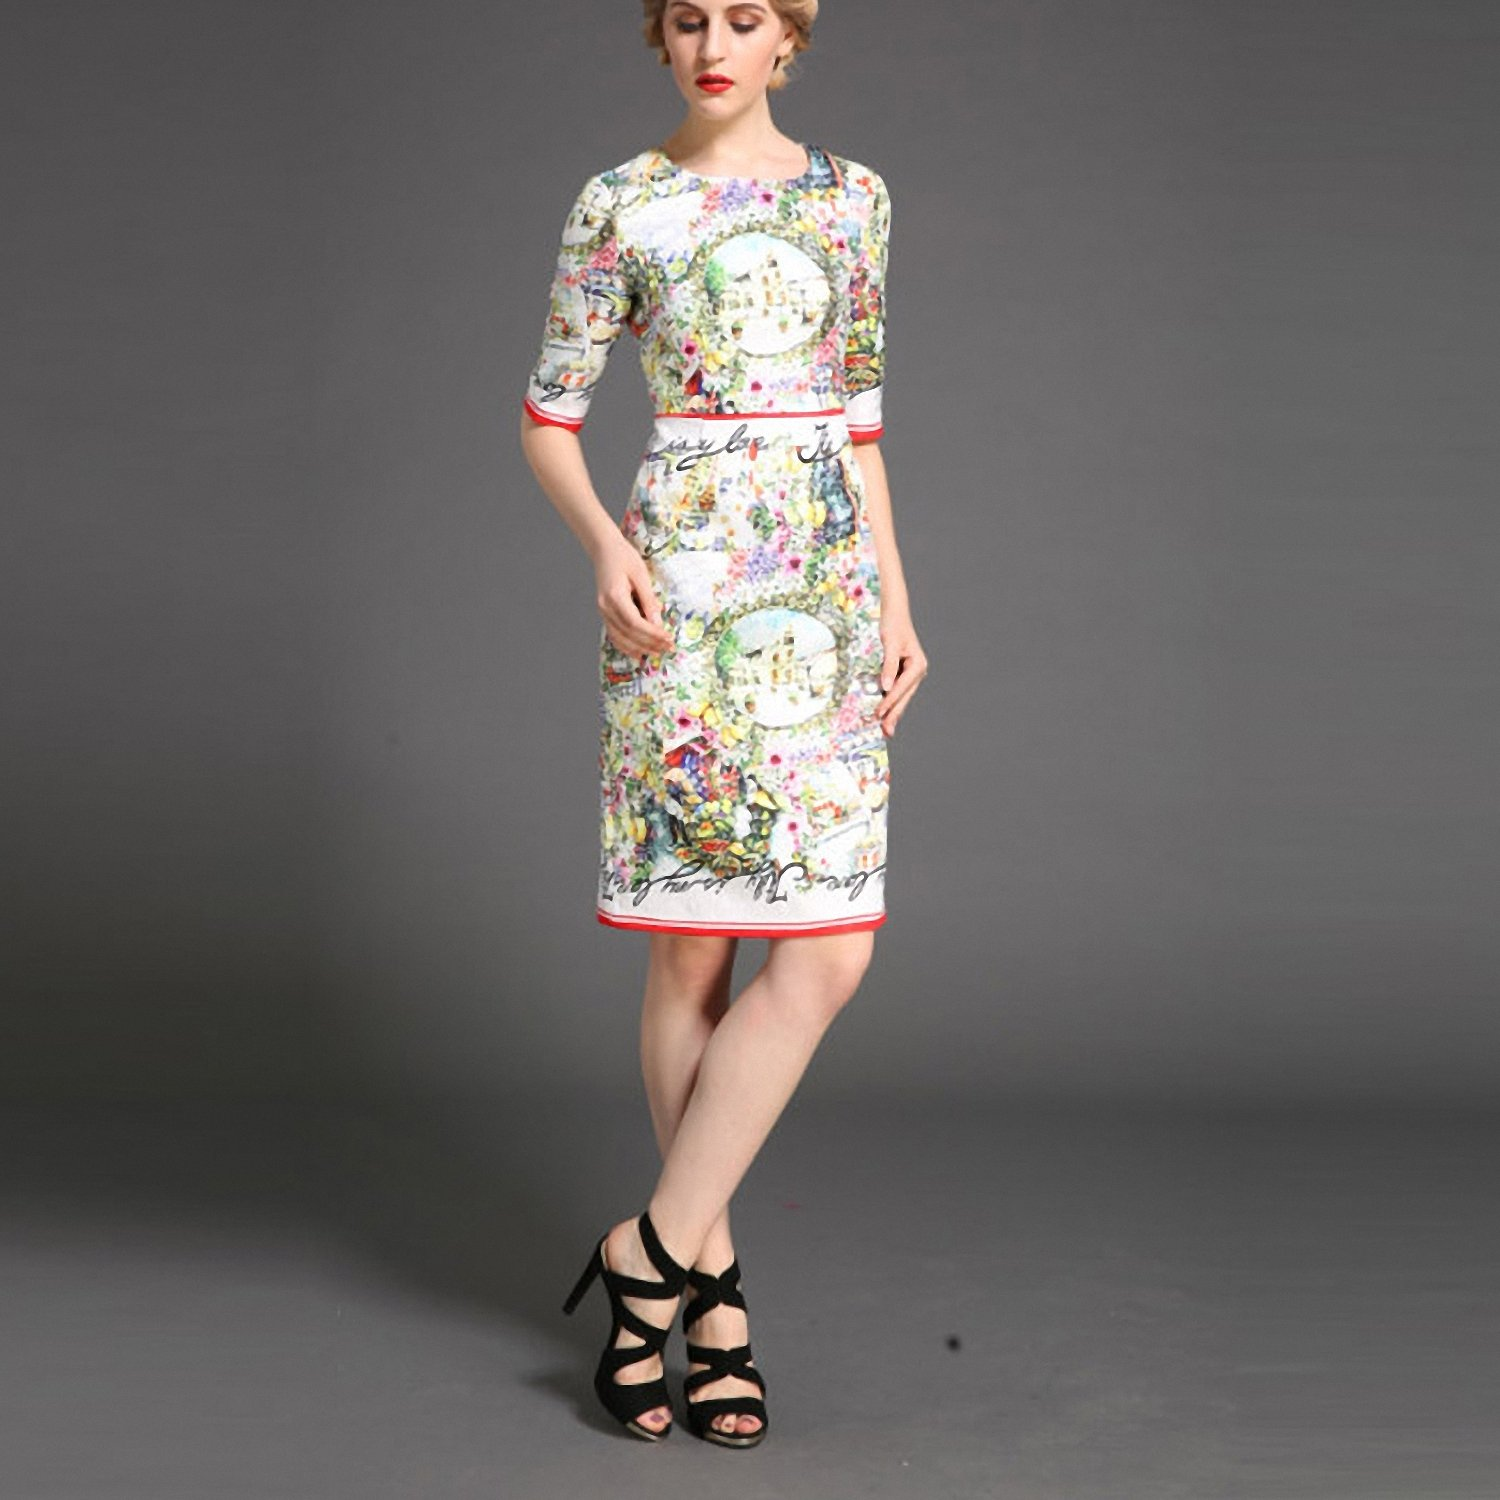 Amazon.com: Venetia Morton Fashion Vestido Autumn Women Slim Dress Designer Runway Brand Jacquard Floral Print Casual Dress: Clothing